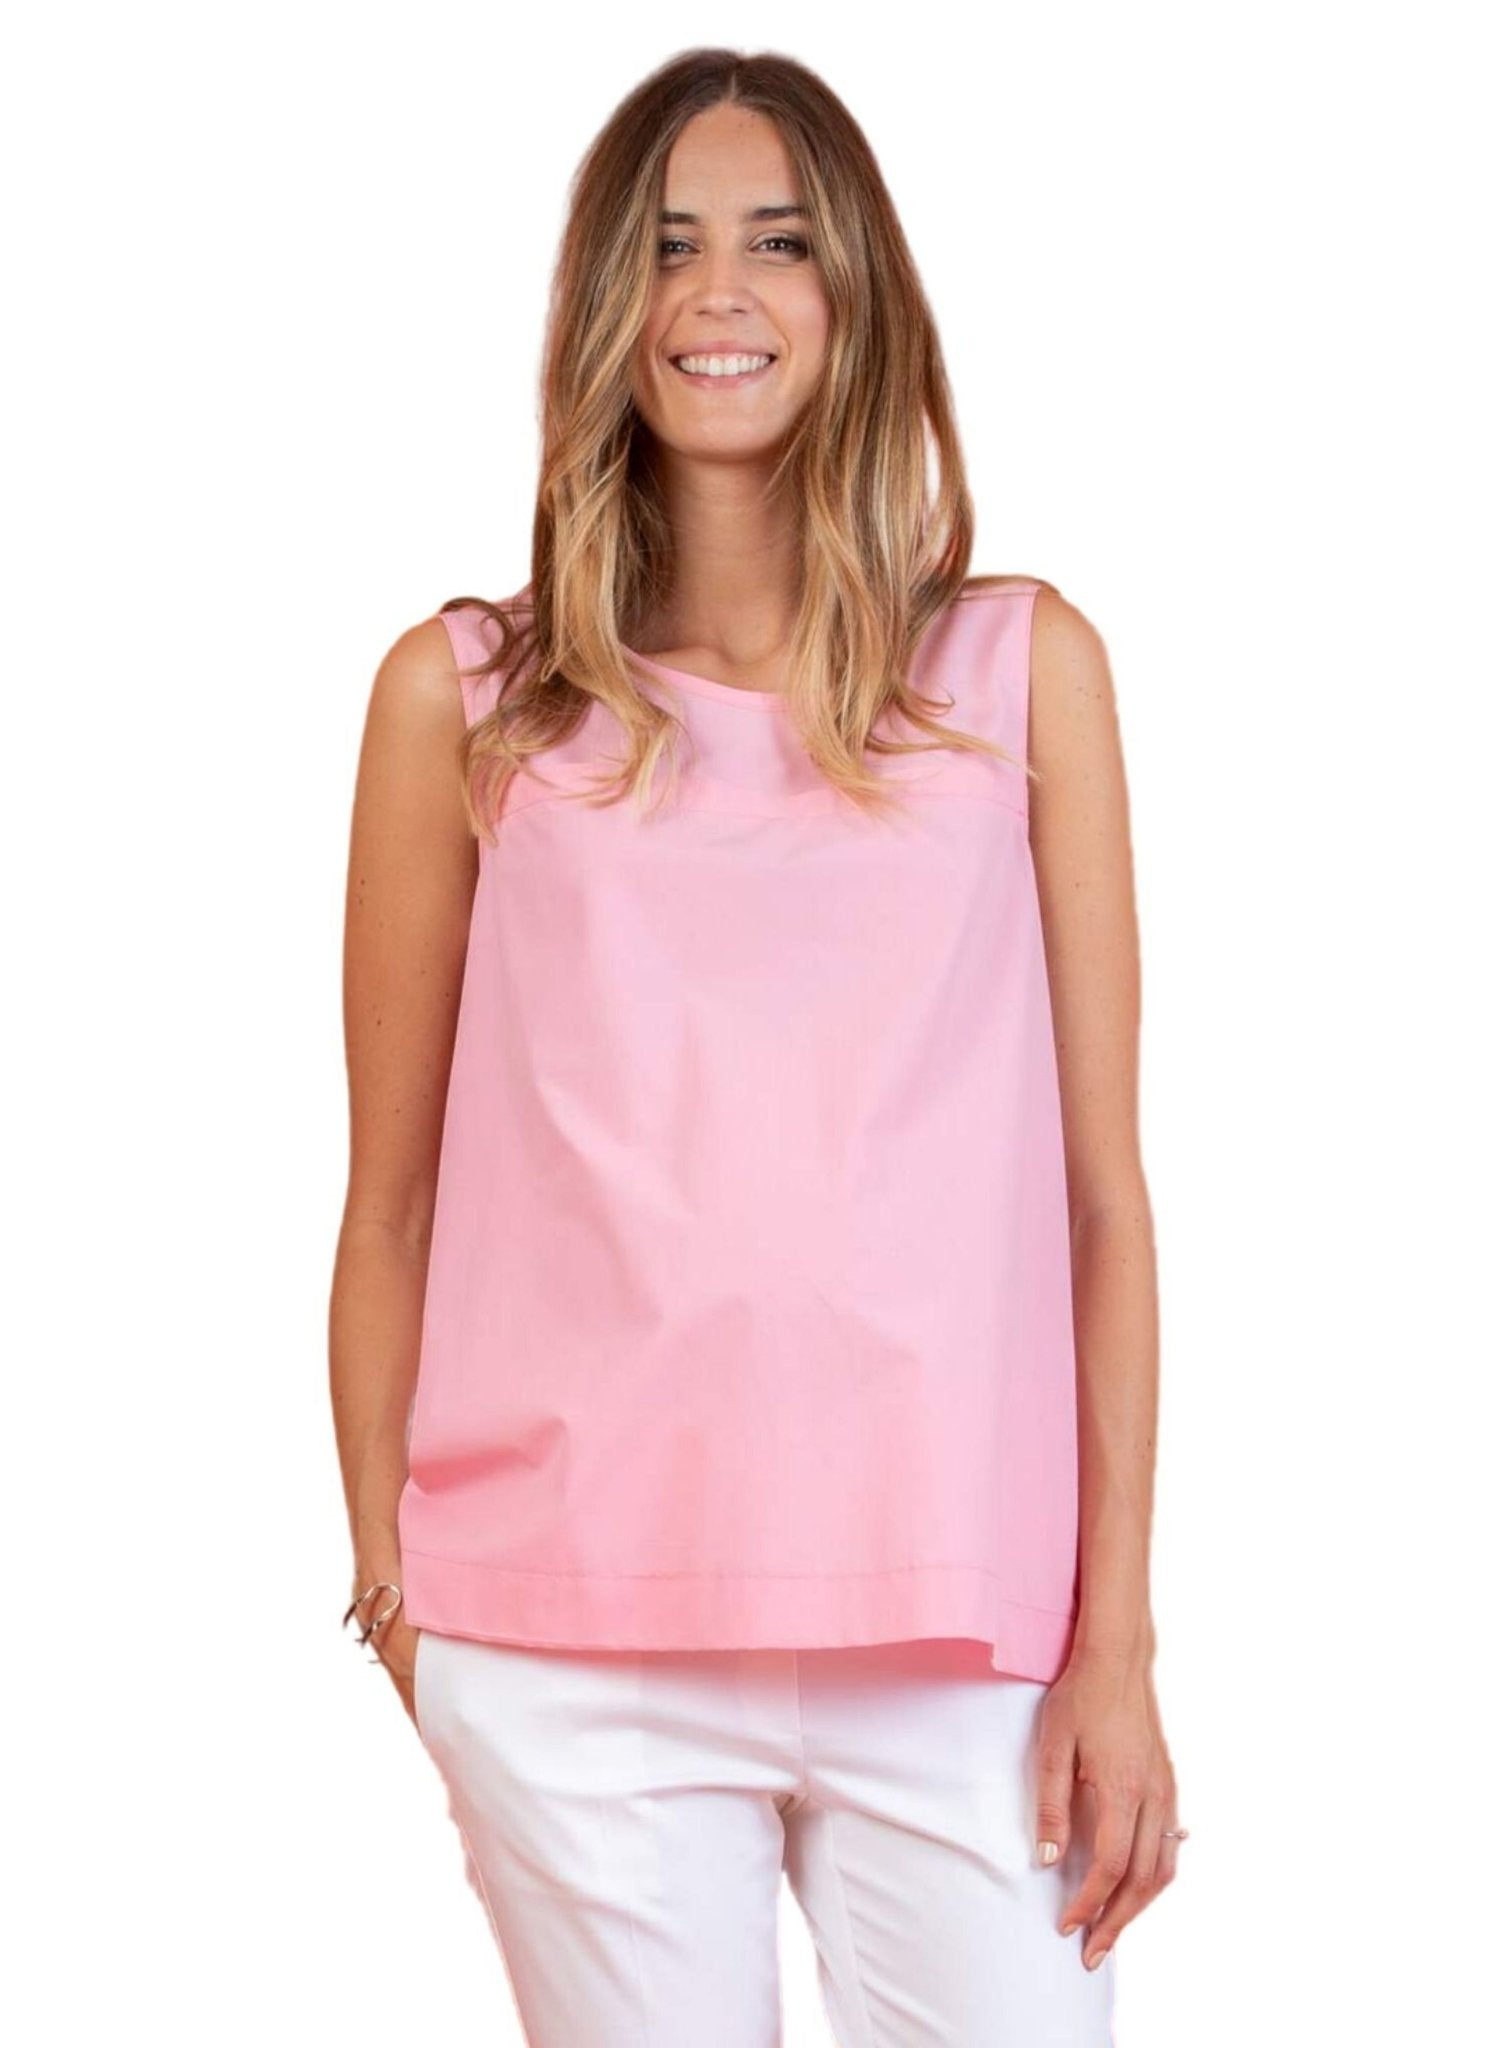 Maternity Top with Creases on the Back - Pink - Mums and Bumps